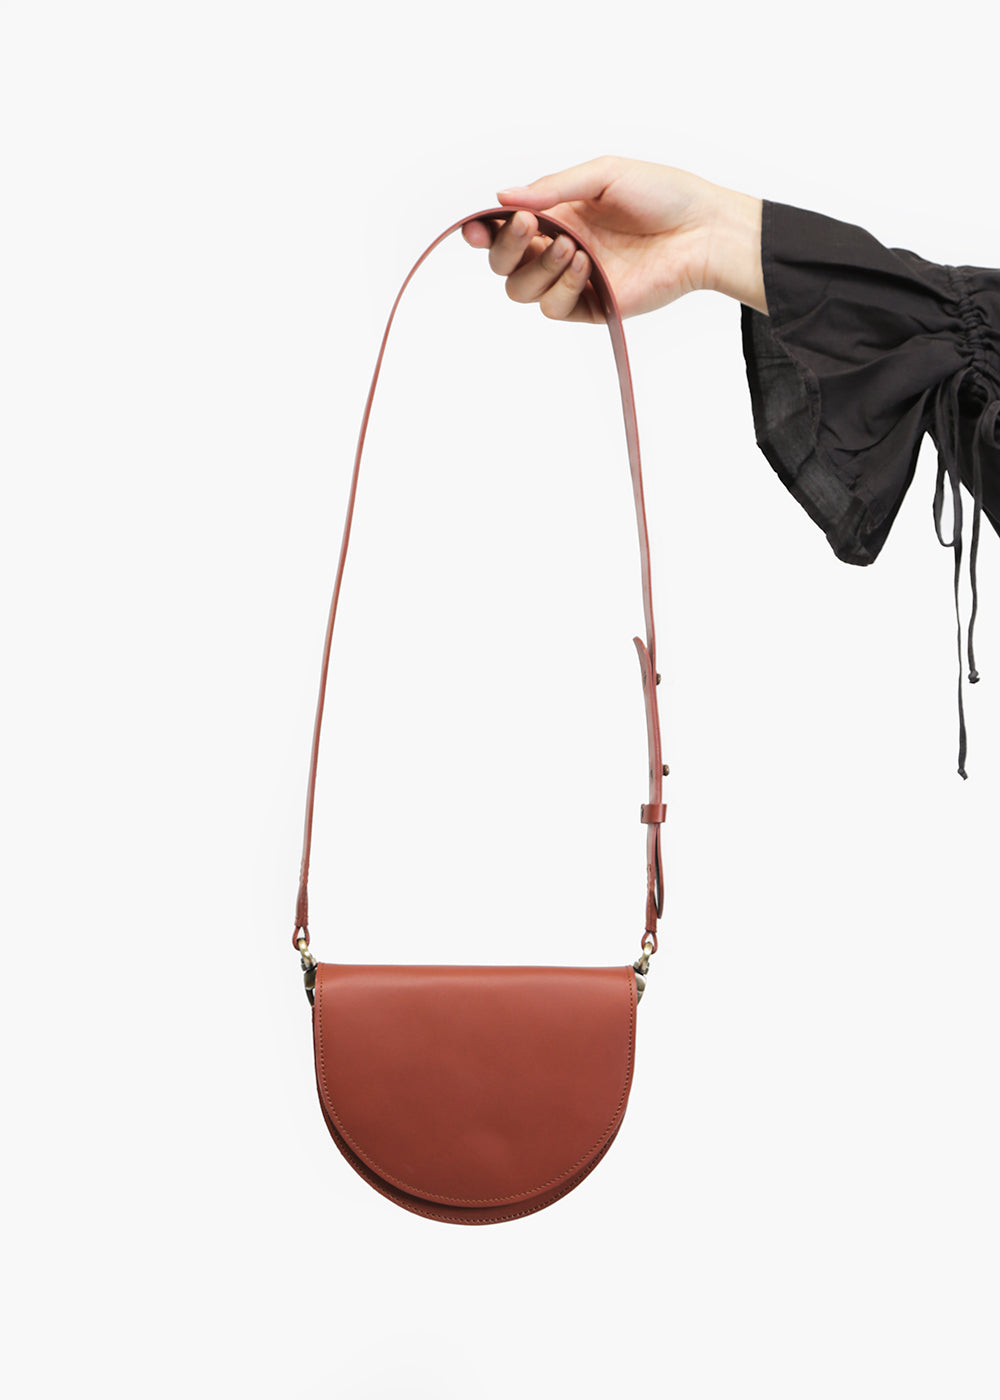 Luna Bag in Brown - New Classics Studios